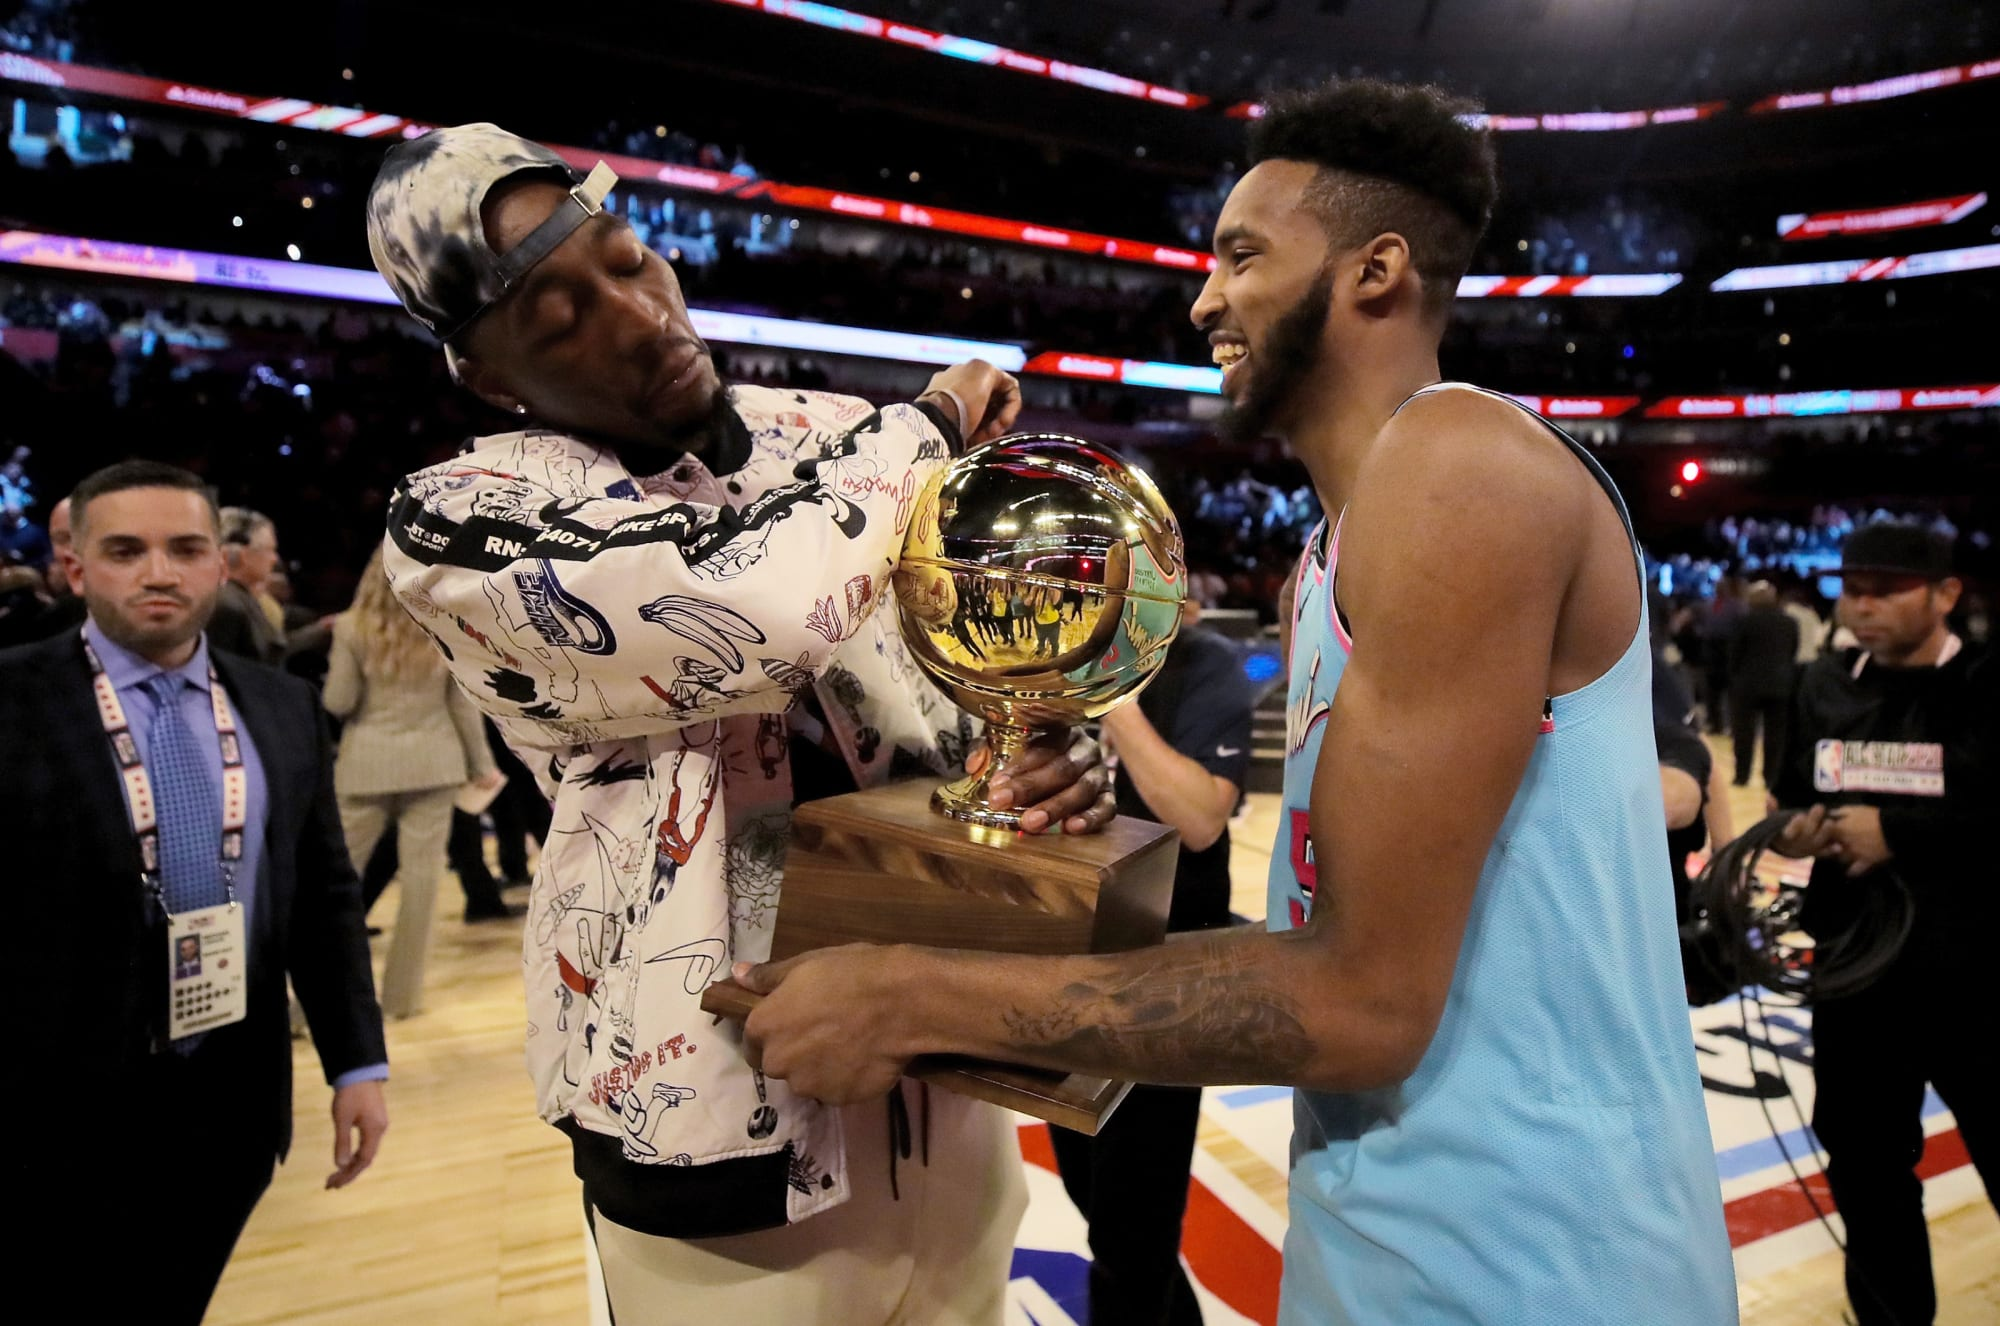 Miami Heat: Some of this team's success rooted in how strong their bond is